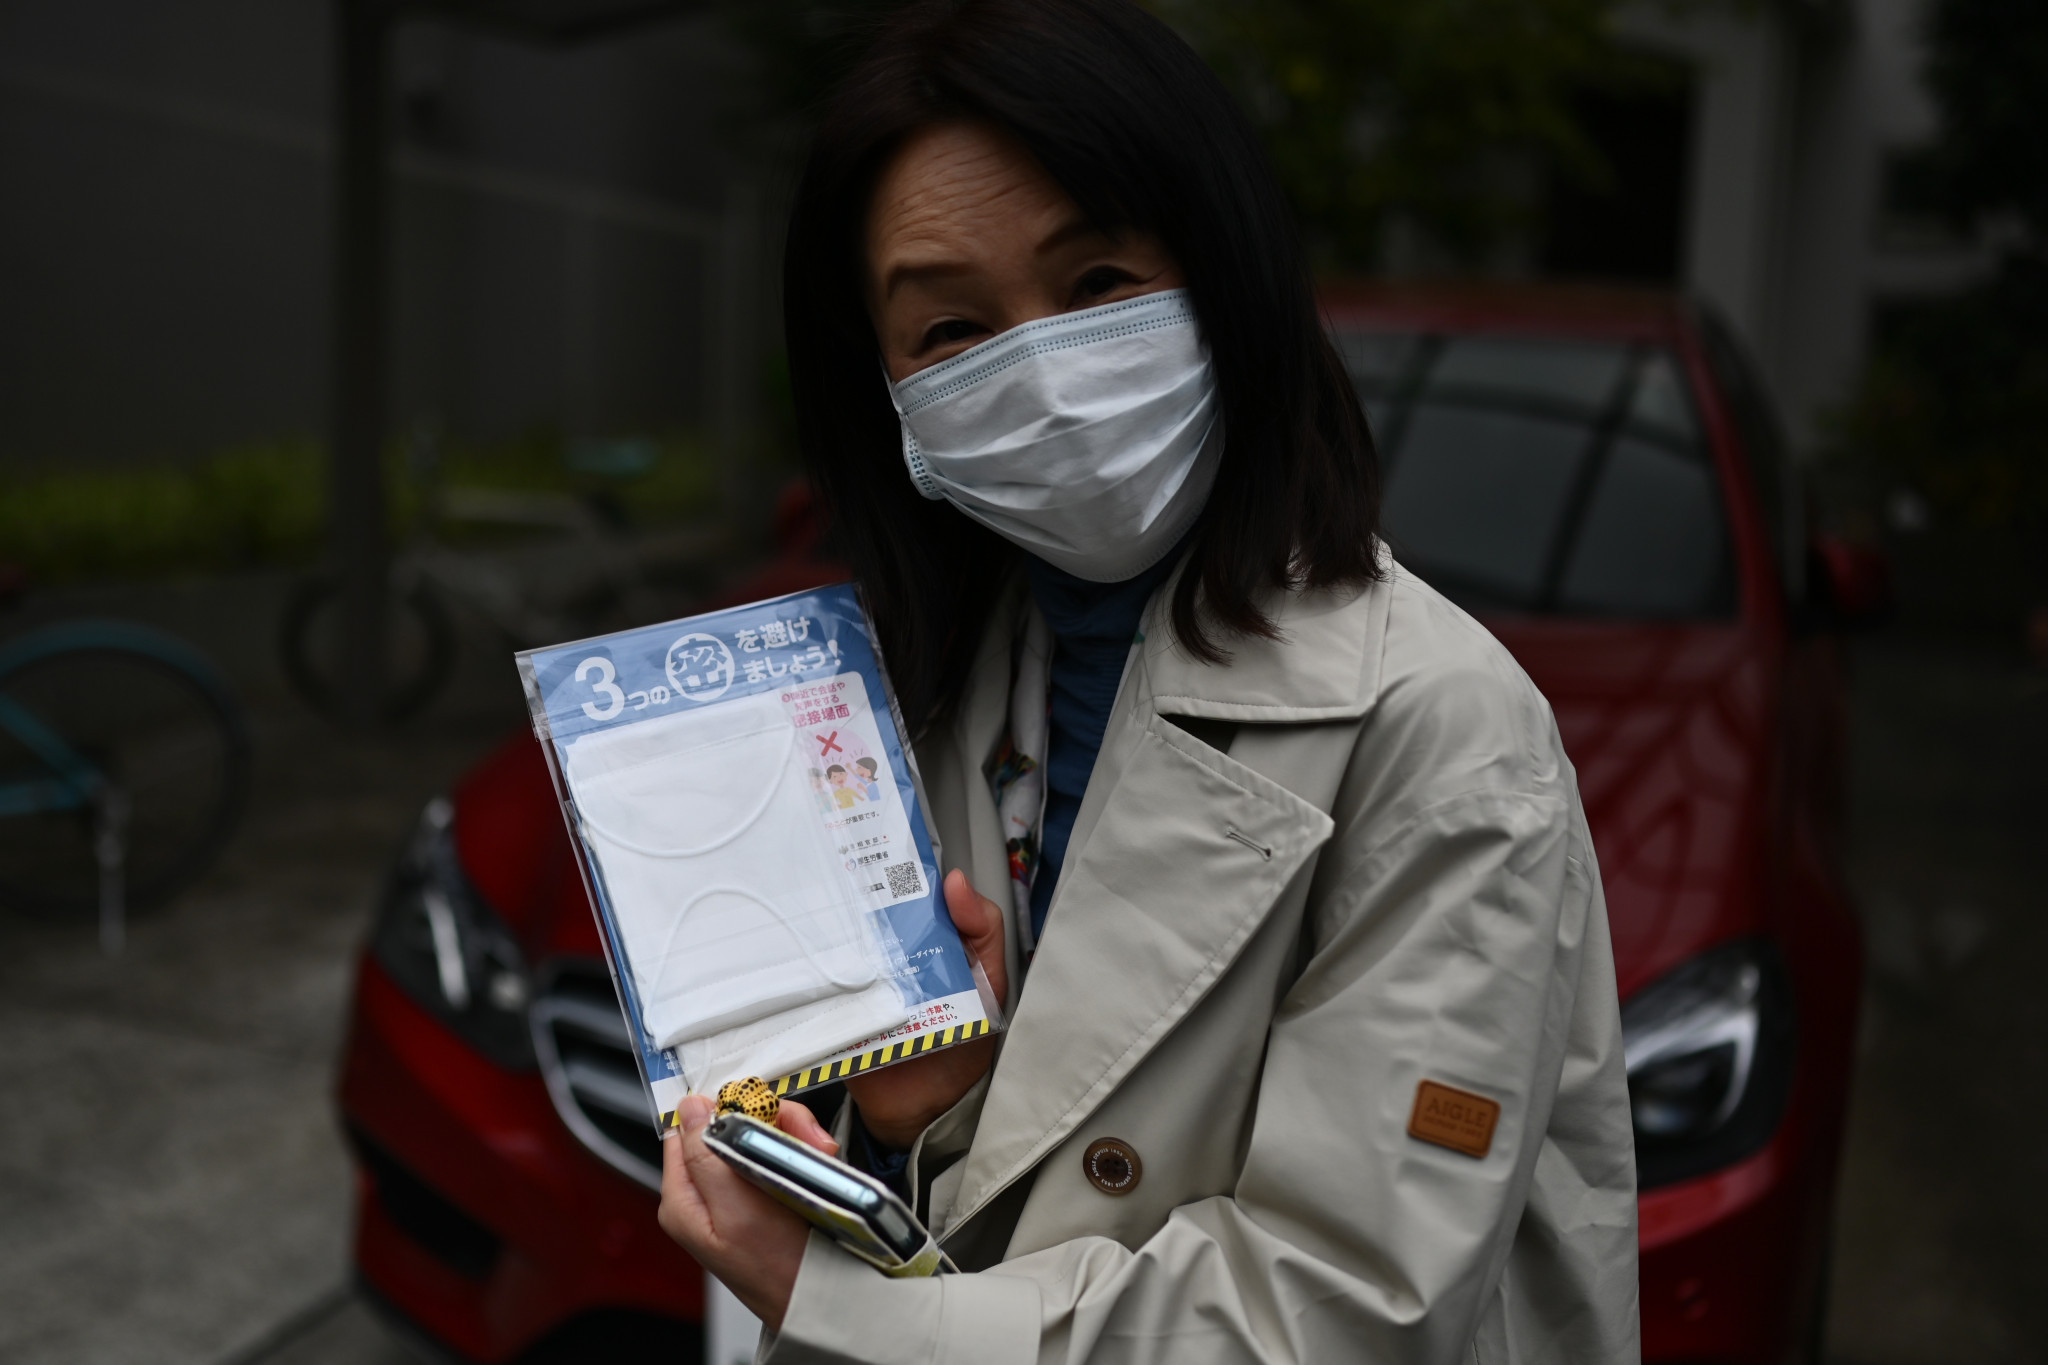 Japanese Swimming Federation donate 17,000 masks to hospitals